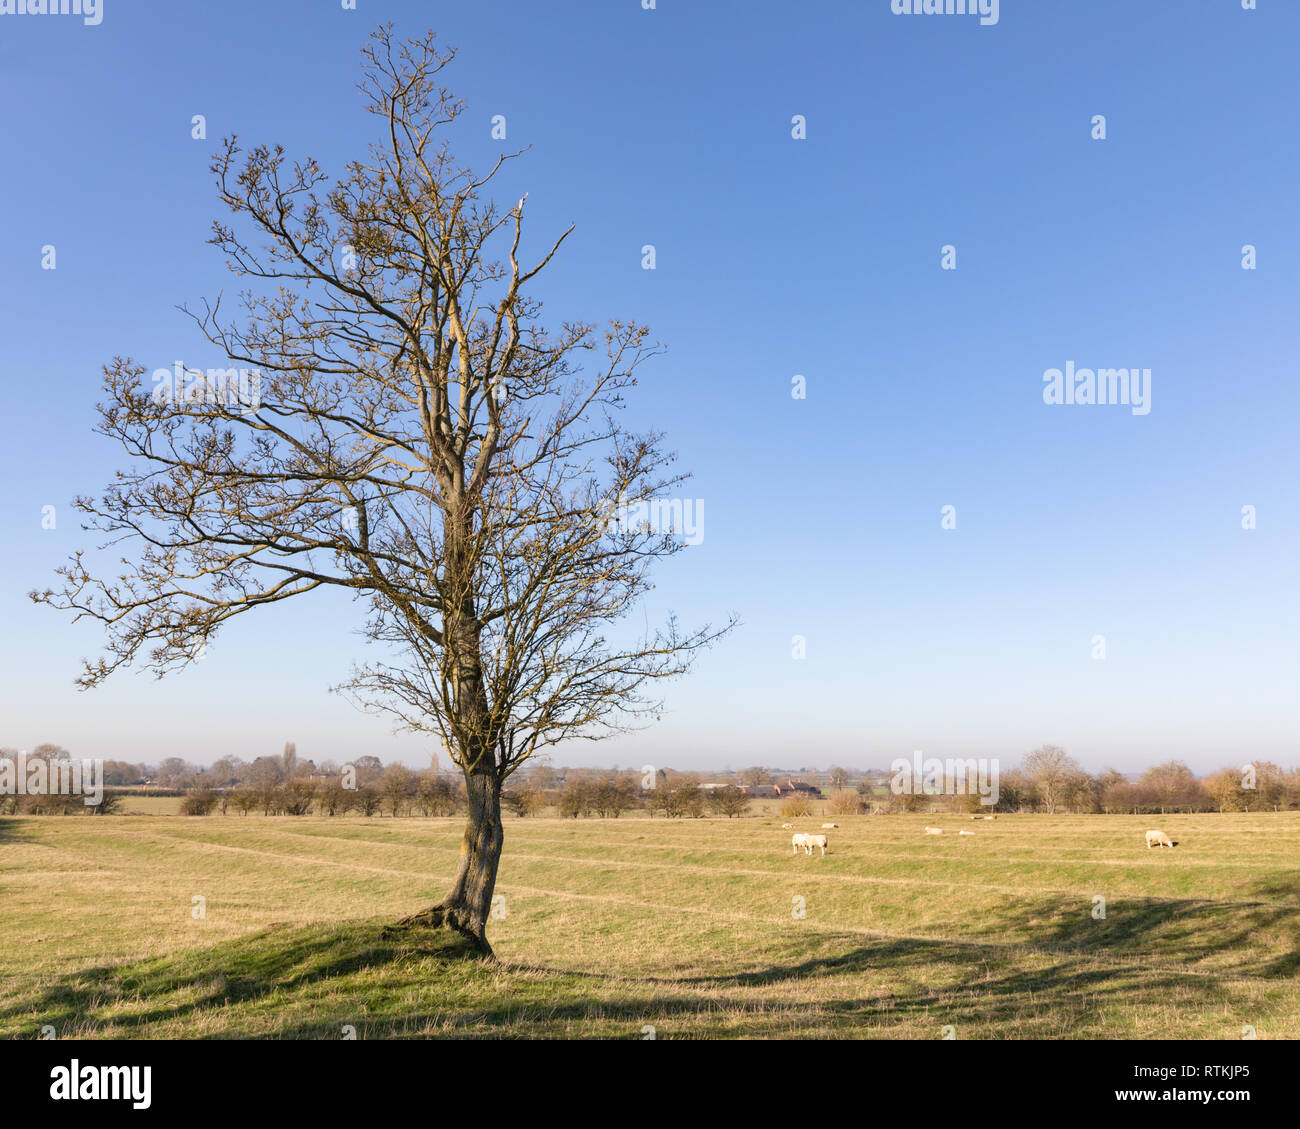 Willoughby, Warwickshire / UK - Feb 26 2019: Lone tree stands in a ridge and furrow field containing grazing sheep. The sky is blue and cloudless. - Stock Image